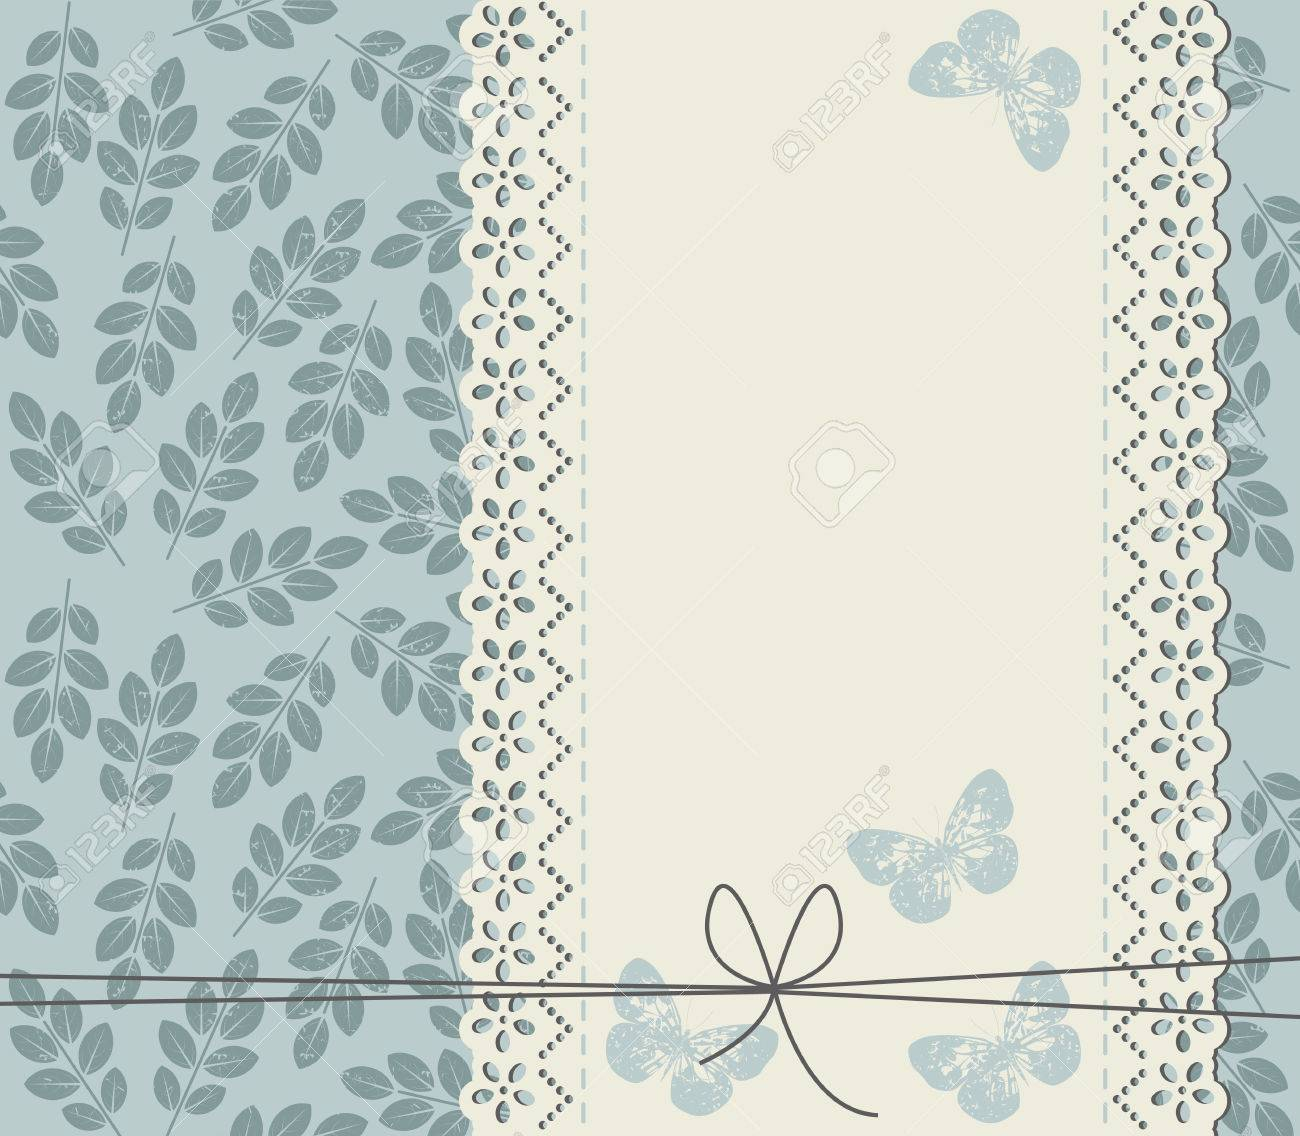 Stylish Background With Leaves And Lace Frame For Your Designs Cute